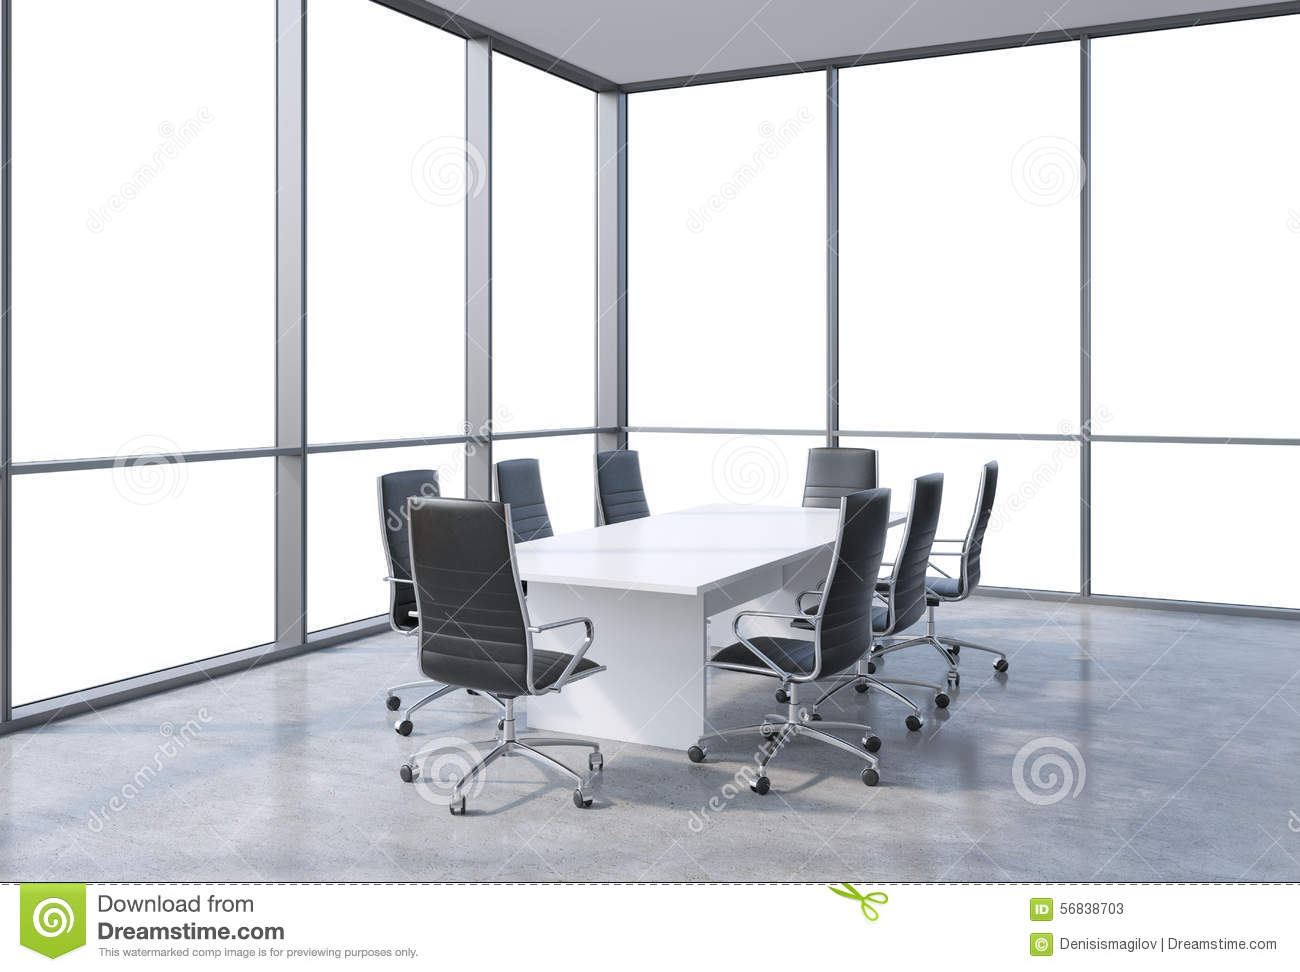 office conference room chairs. royalty-free illustration. download panoramic conference room in modern office chairs